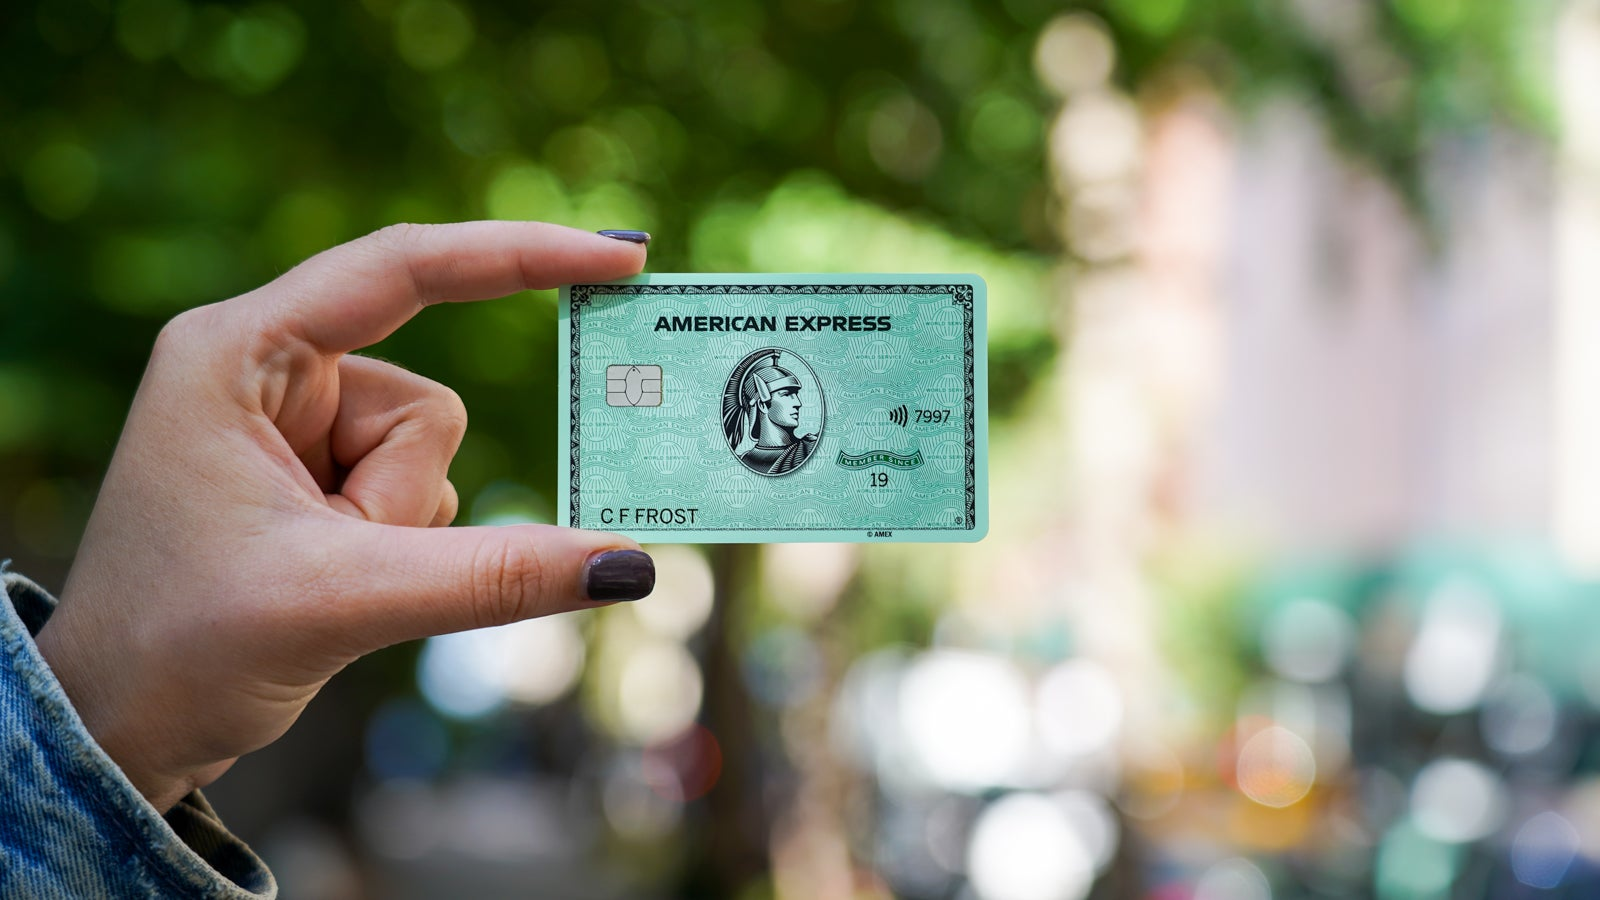 Who should (and who shouldn't) get the Amex Green?